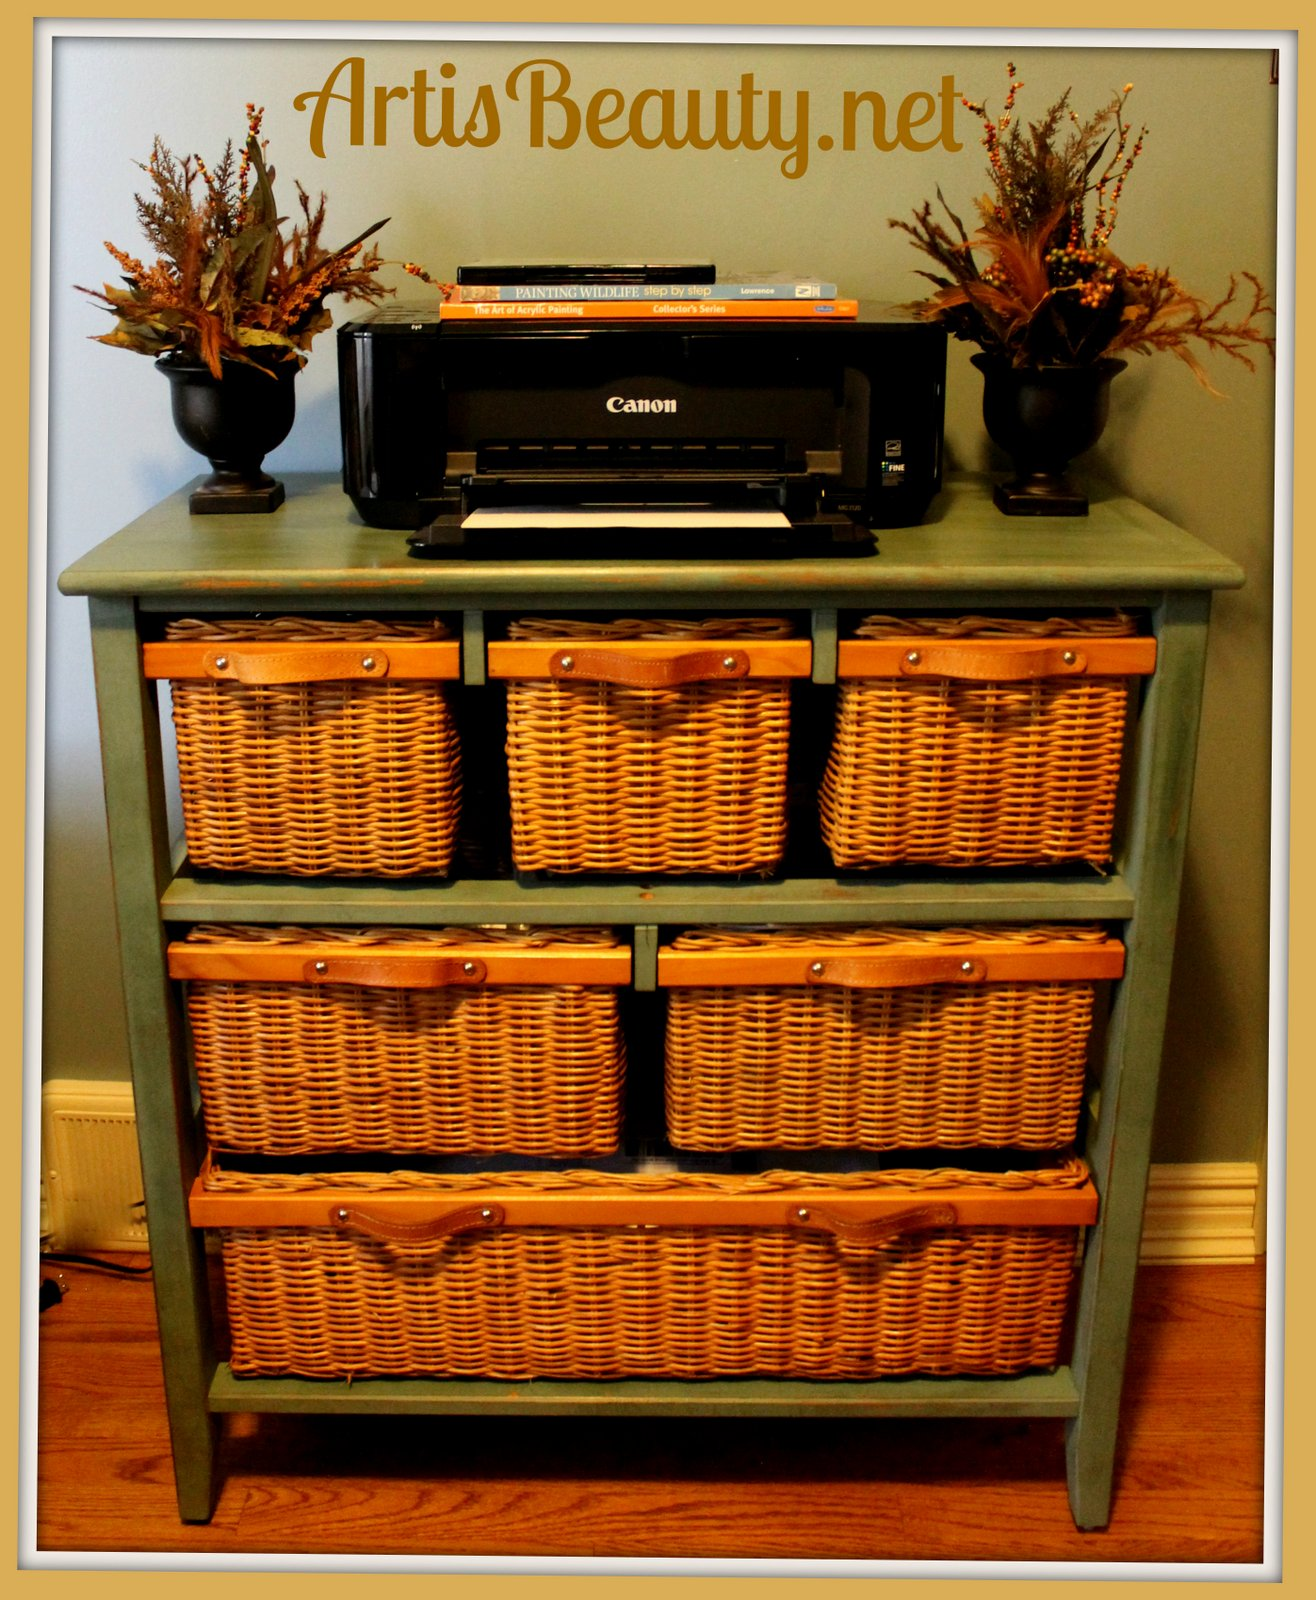 dresser baskets wicker of explore tv attachment storage furniture media photos stands drawers basket favorite interior with showing within